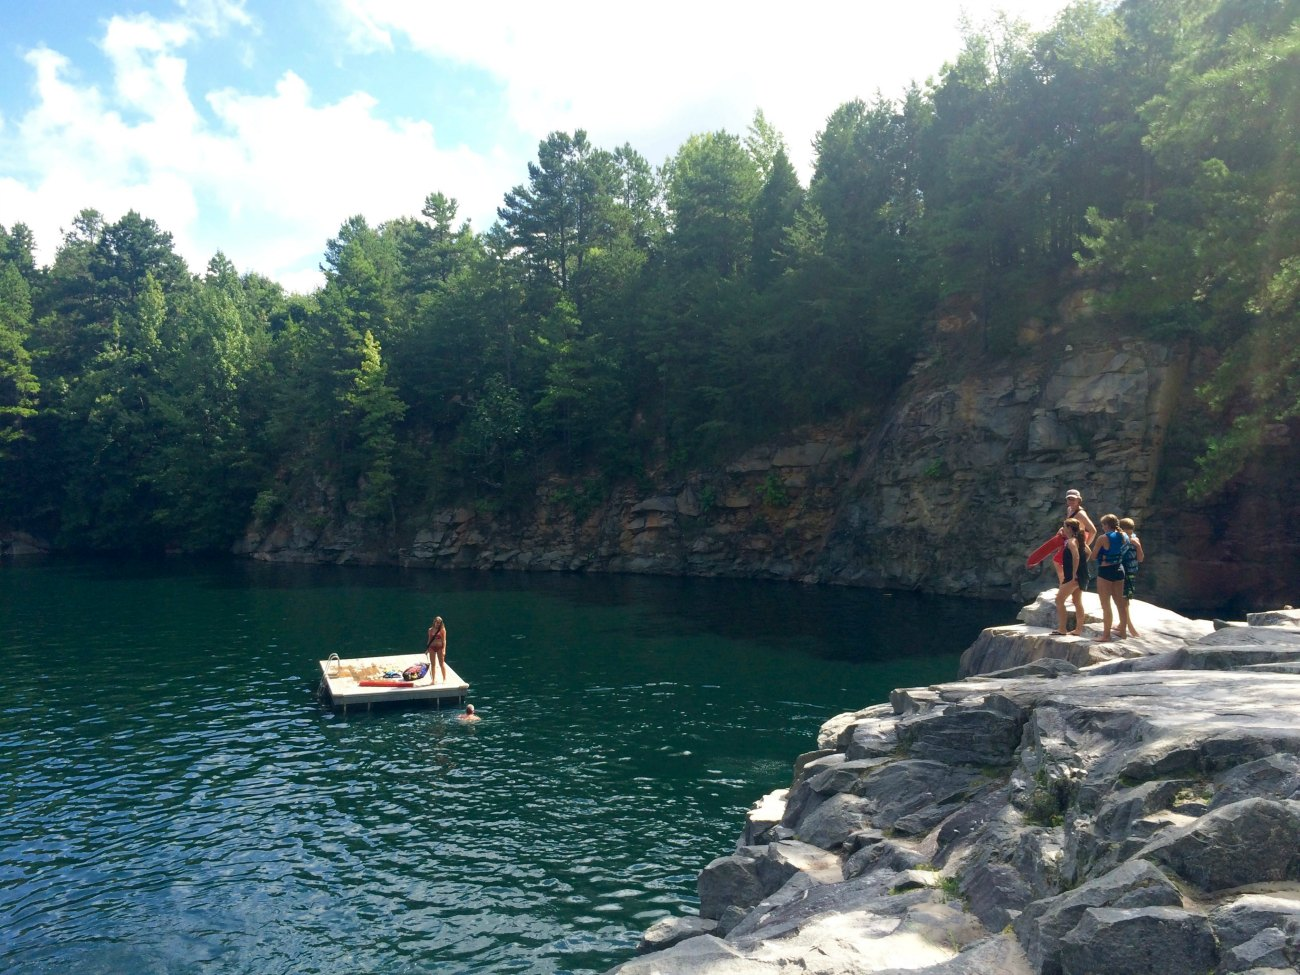 Plunge off rocky cliffs into blue-green water at The Quarry